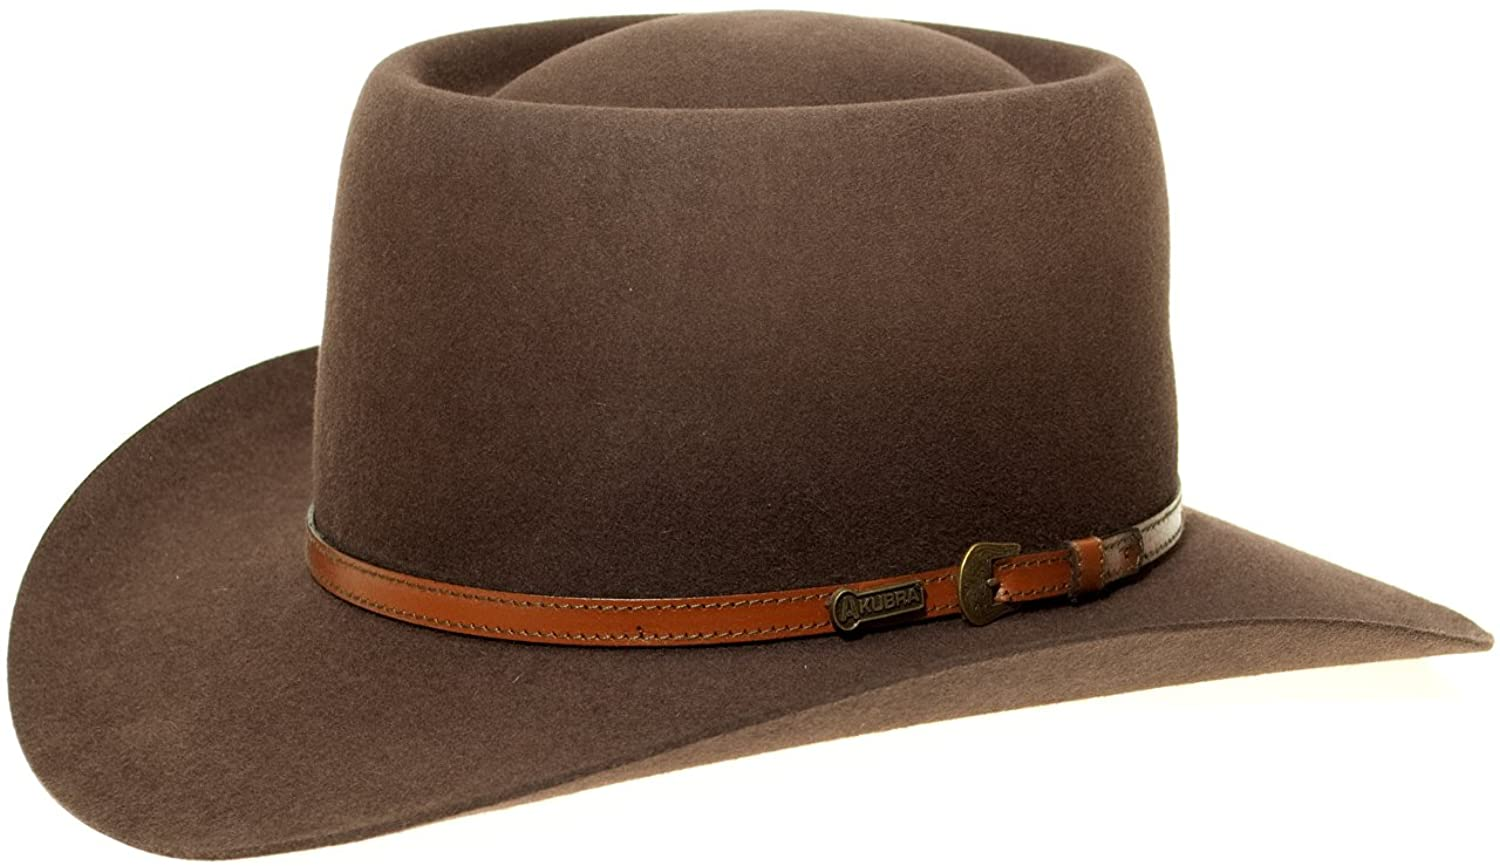 Akubra Down Under Filzhut aus Australien Rodeo Brown